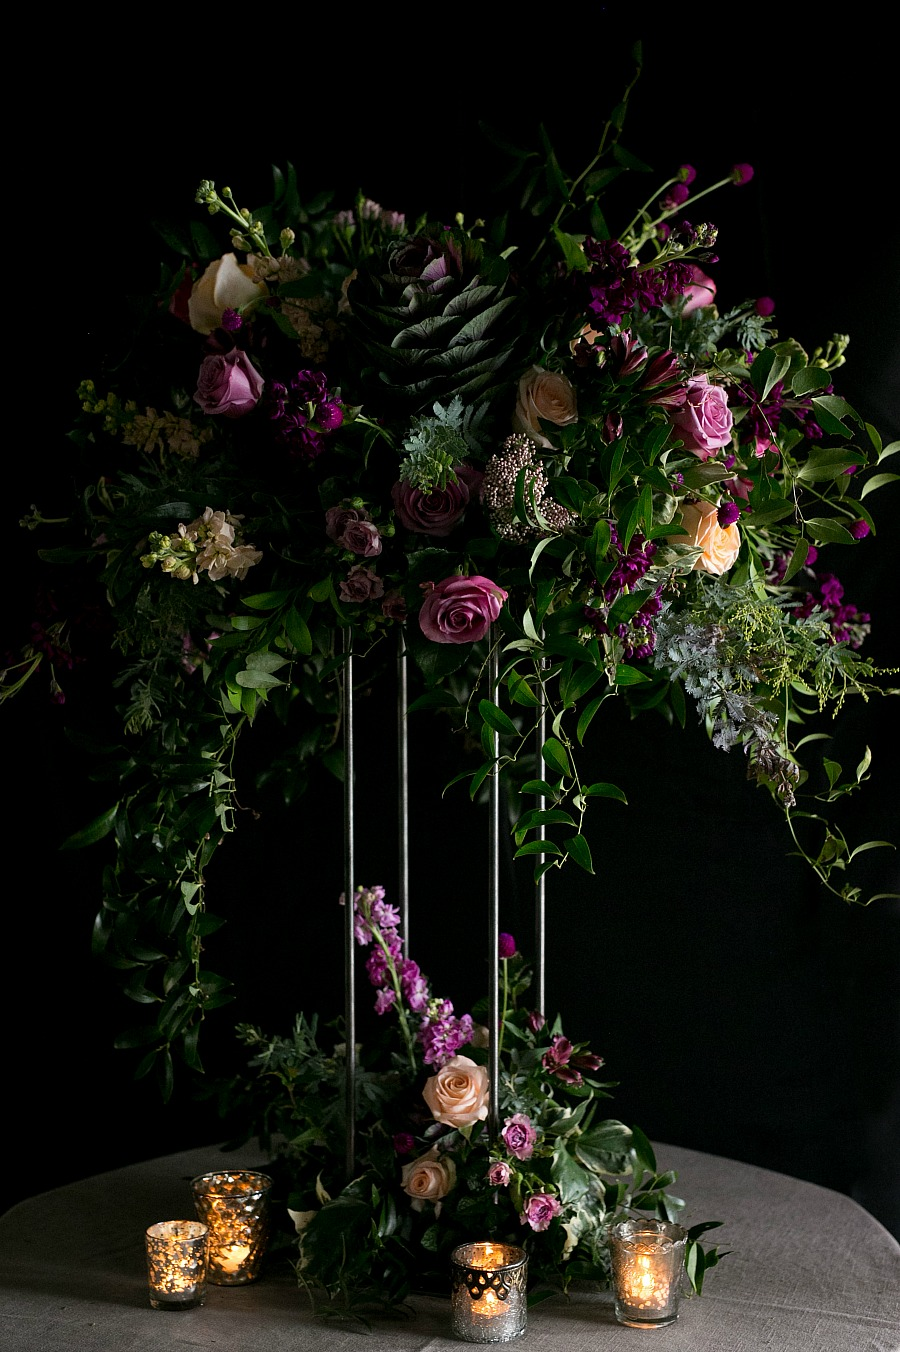 Kale & Dramatic Wedding Centerpieces for Luxury Wedding Florist Isha Foss